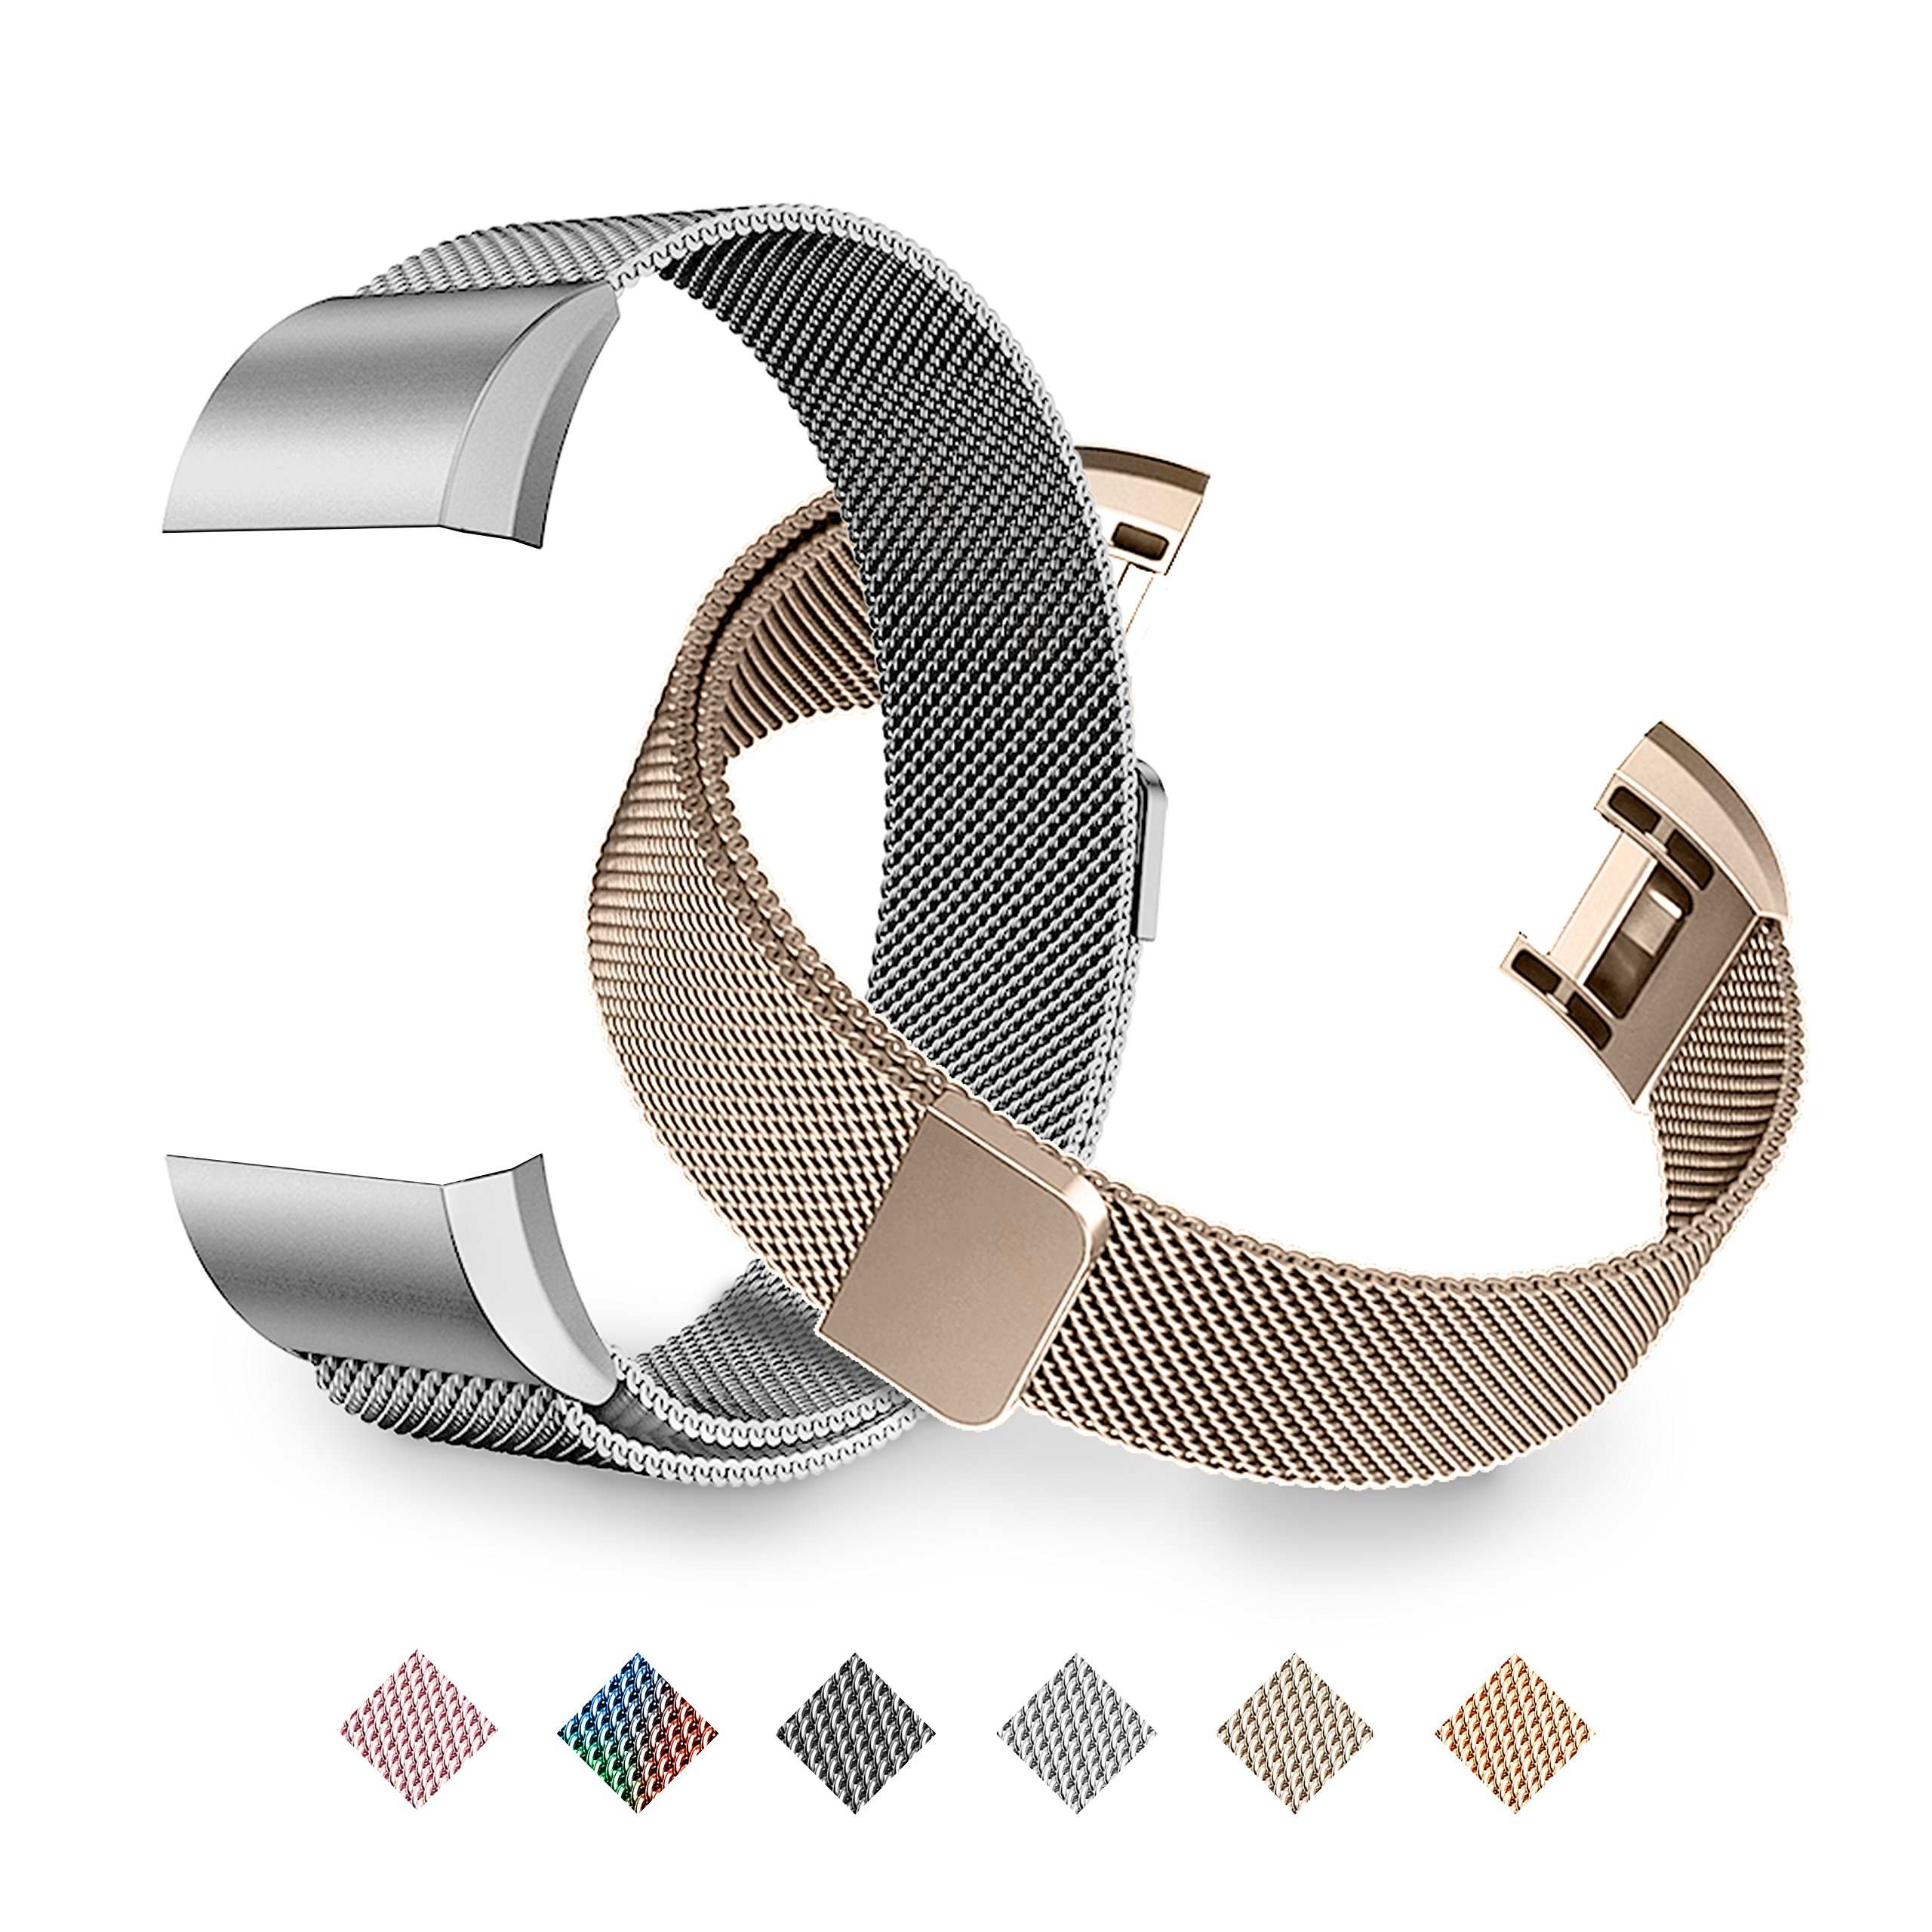 Fitbit Charge 2 Bands, Tecson Stainless Steel Metal Milanese Replacement Wristband Bracelet Strap with Magnet Lock for Fitbit Charge 2, Rose Gold, Champagne, Rose Pink, (Champagne Gold & Silver) by Tecson (Image #1)